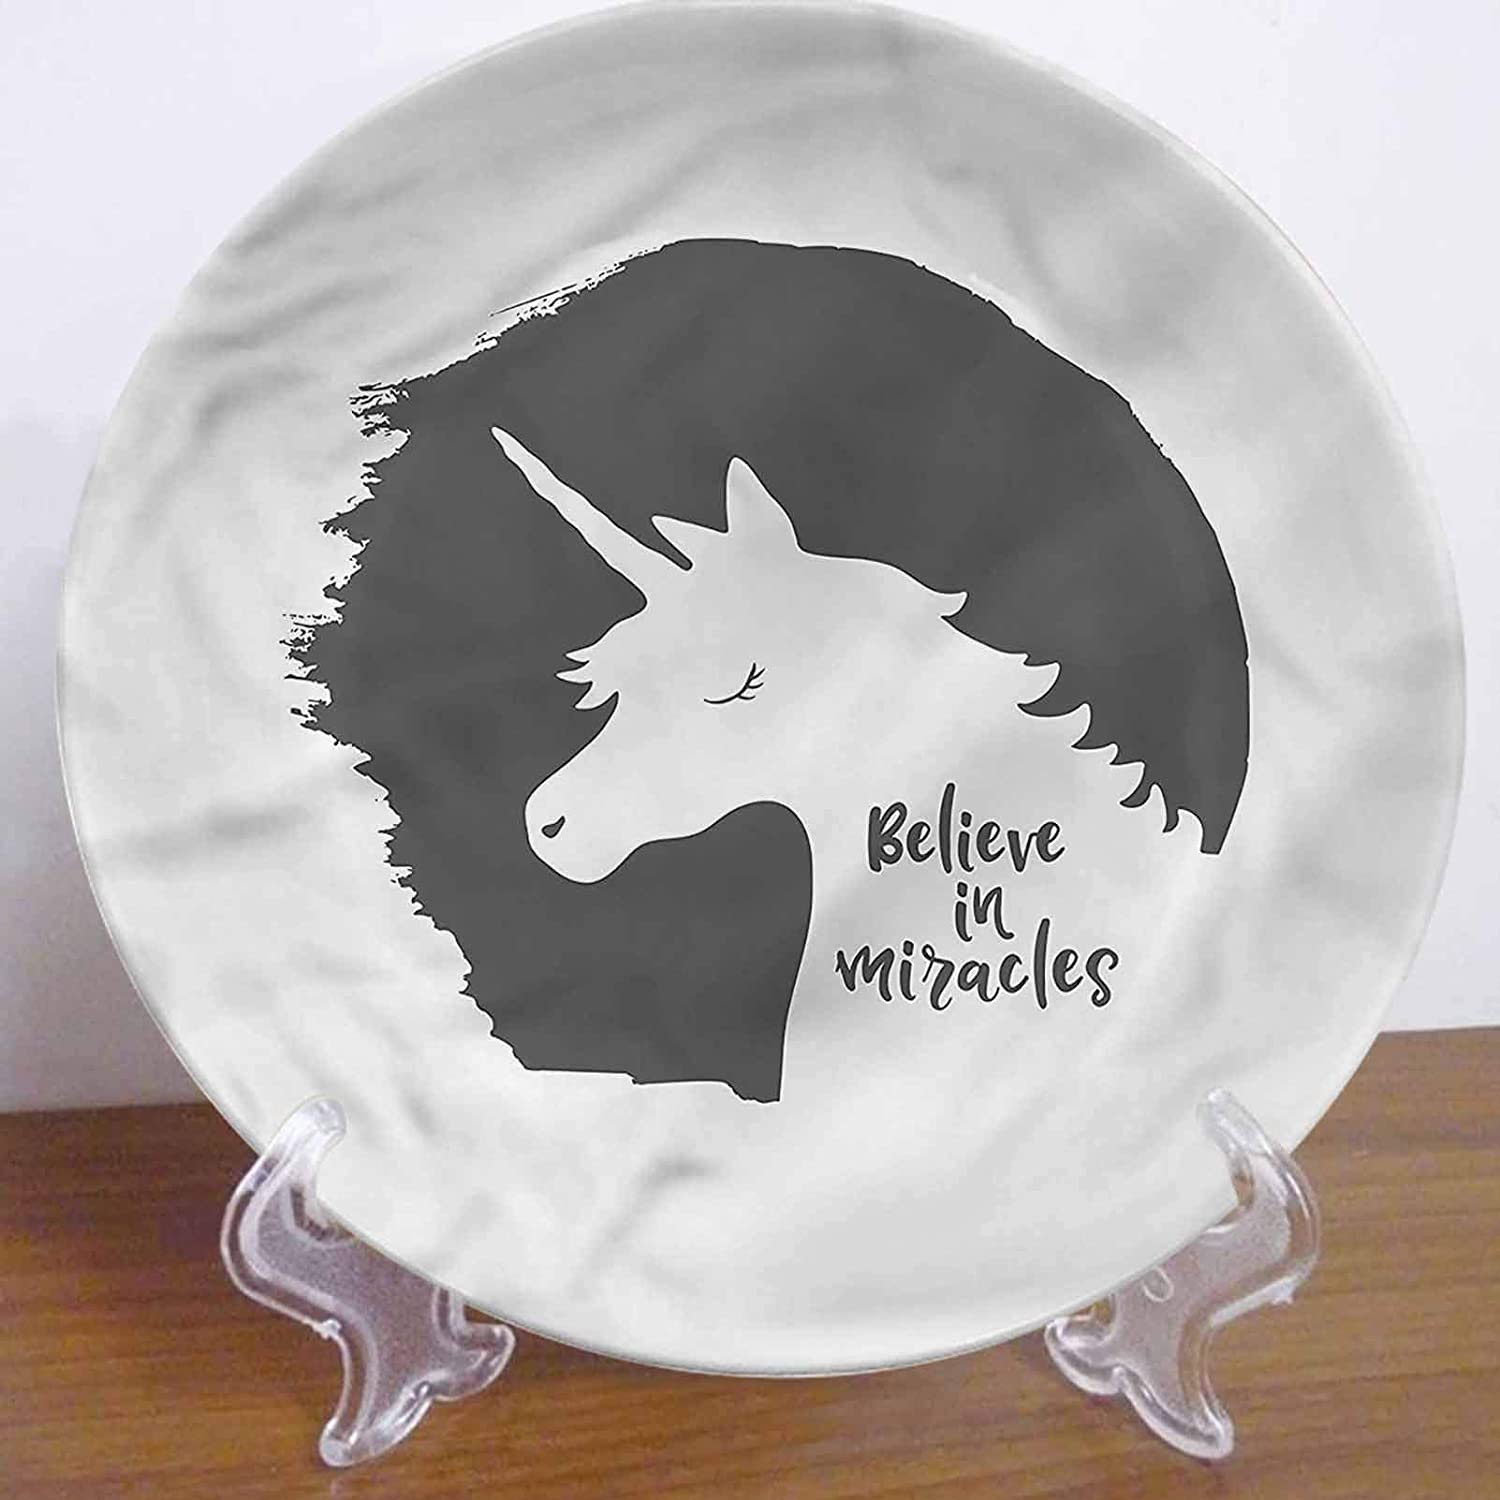 LCGGDB 8 Inch Quote Pattern Ceramic Decorative Plate,Believe in Miracles Phrase Dinner Plate Decor Accessory for Dining, Parties, Wedding